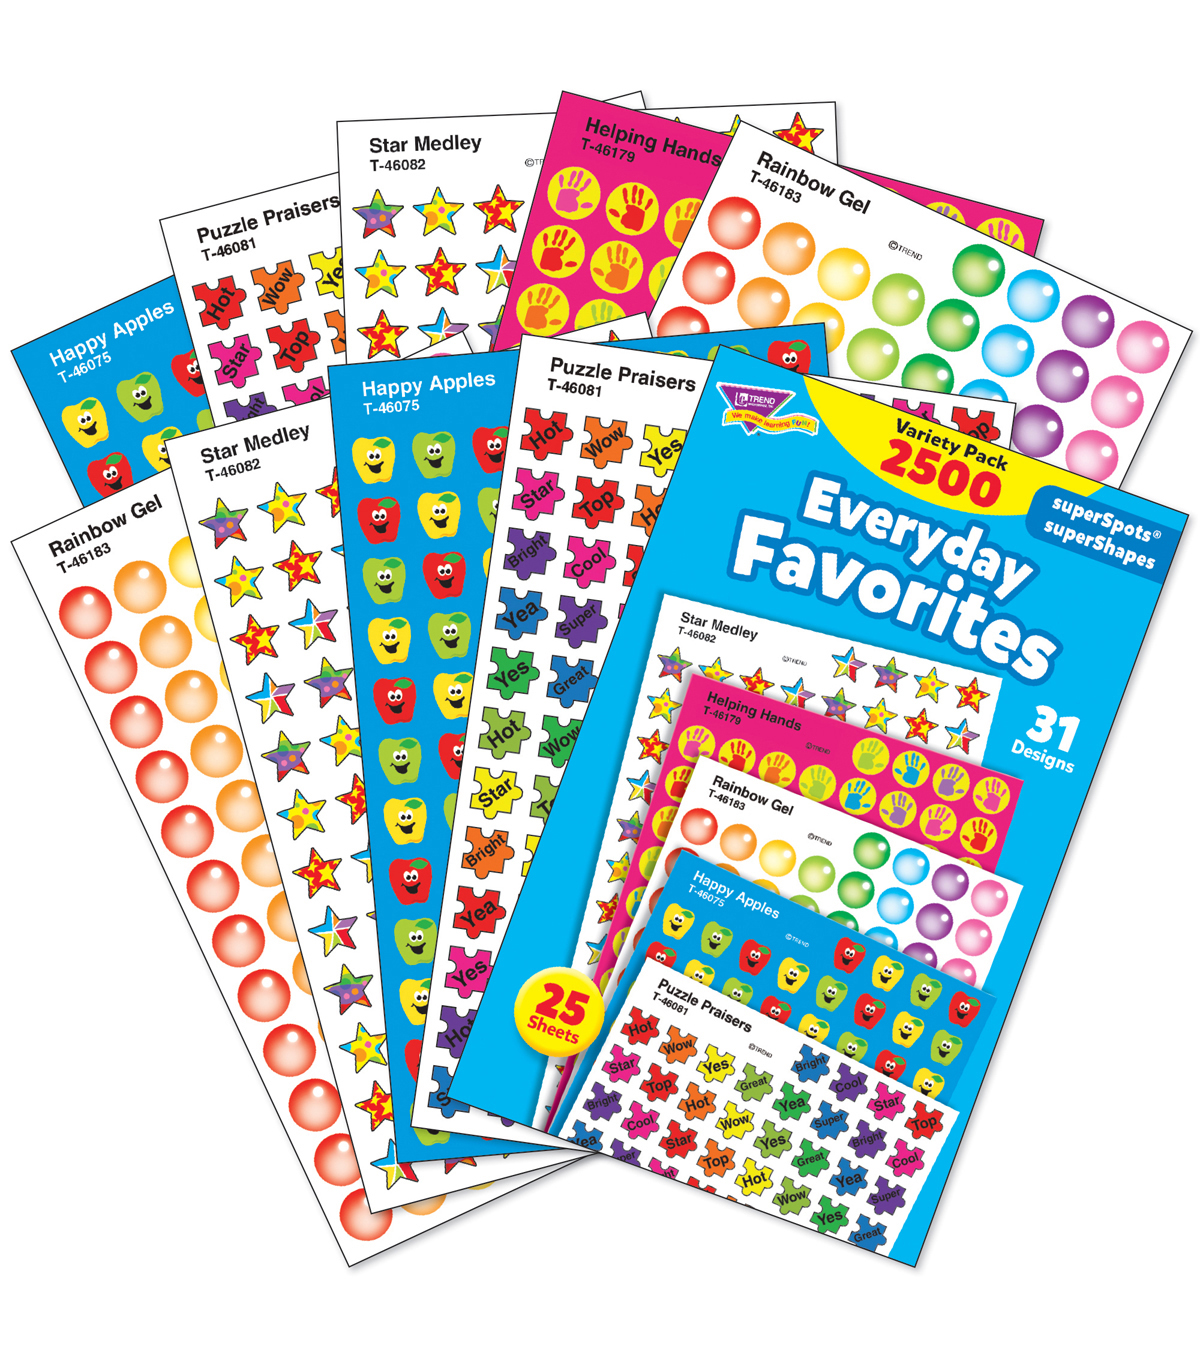 Everyday Favorites Stickers Variety Pack 2500 Per Pack, 3 Packs